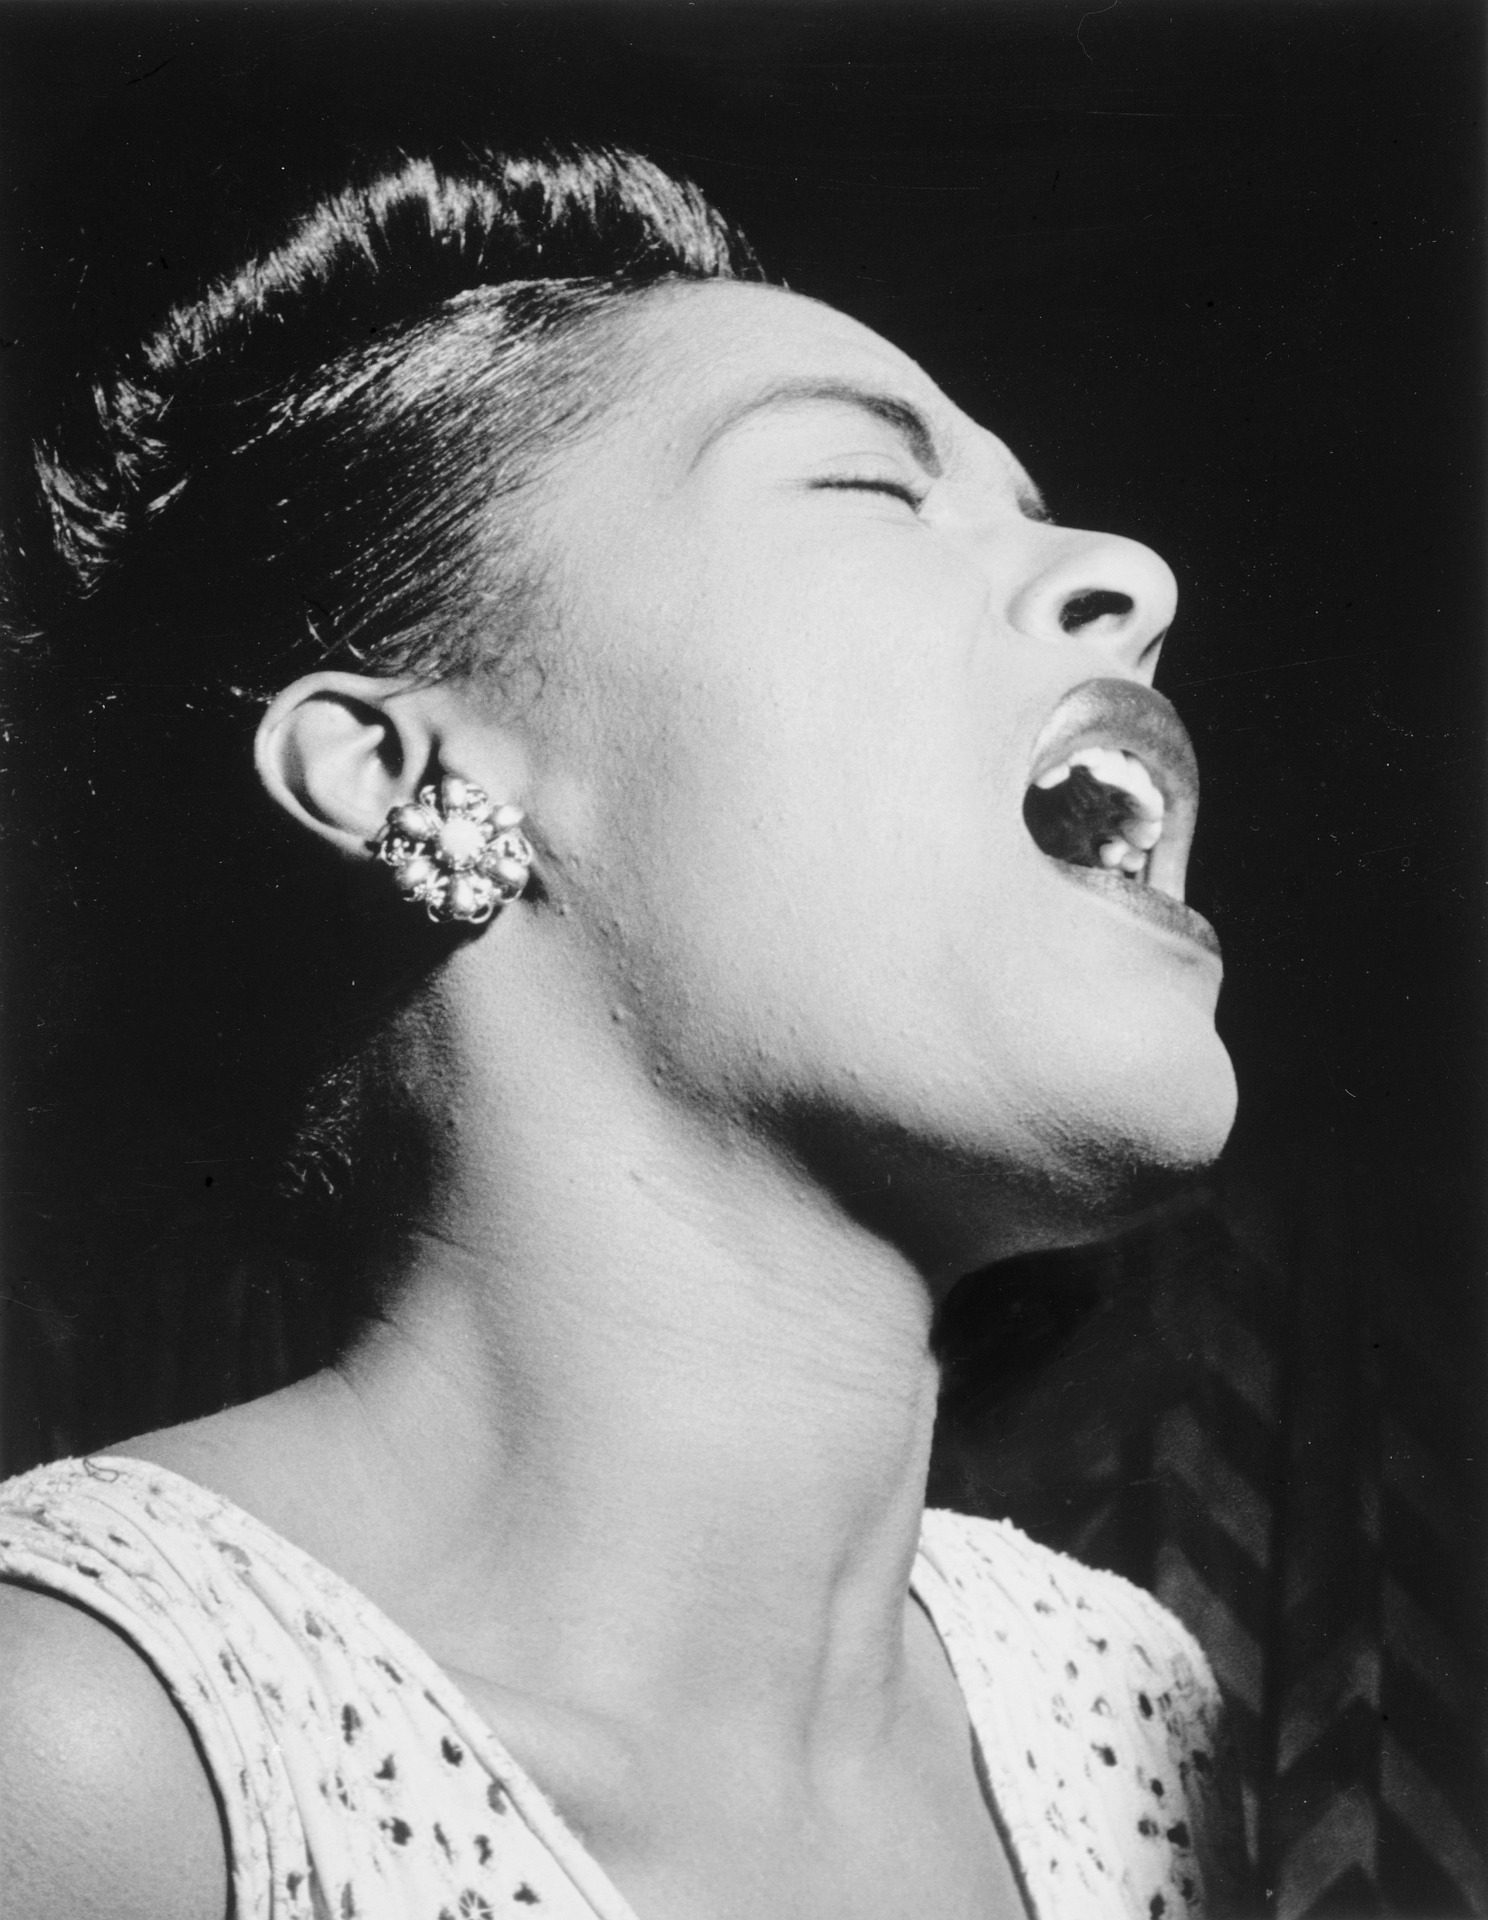 billie-holiday-1281326_1920